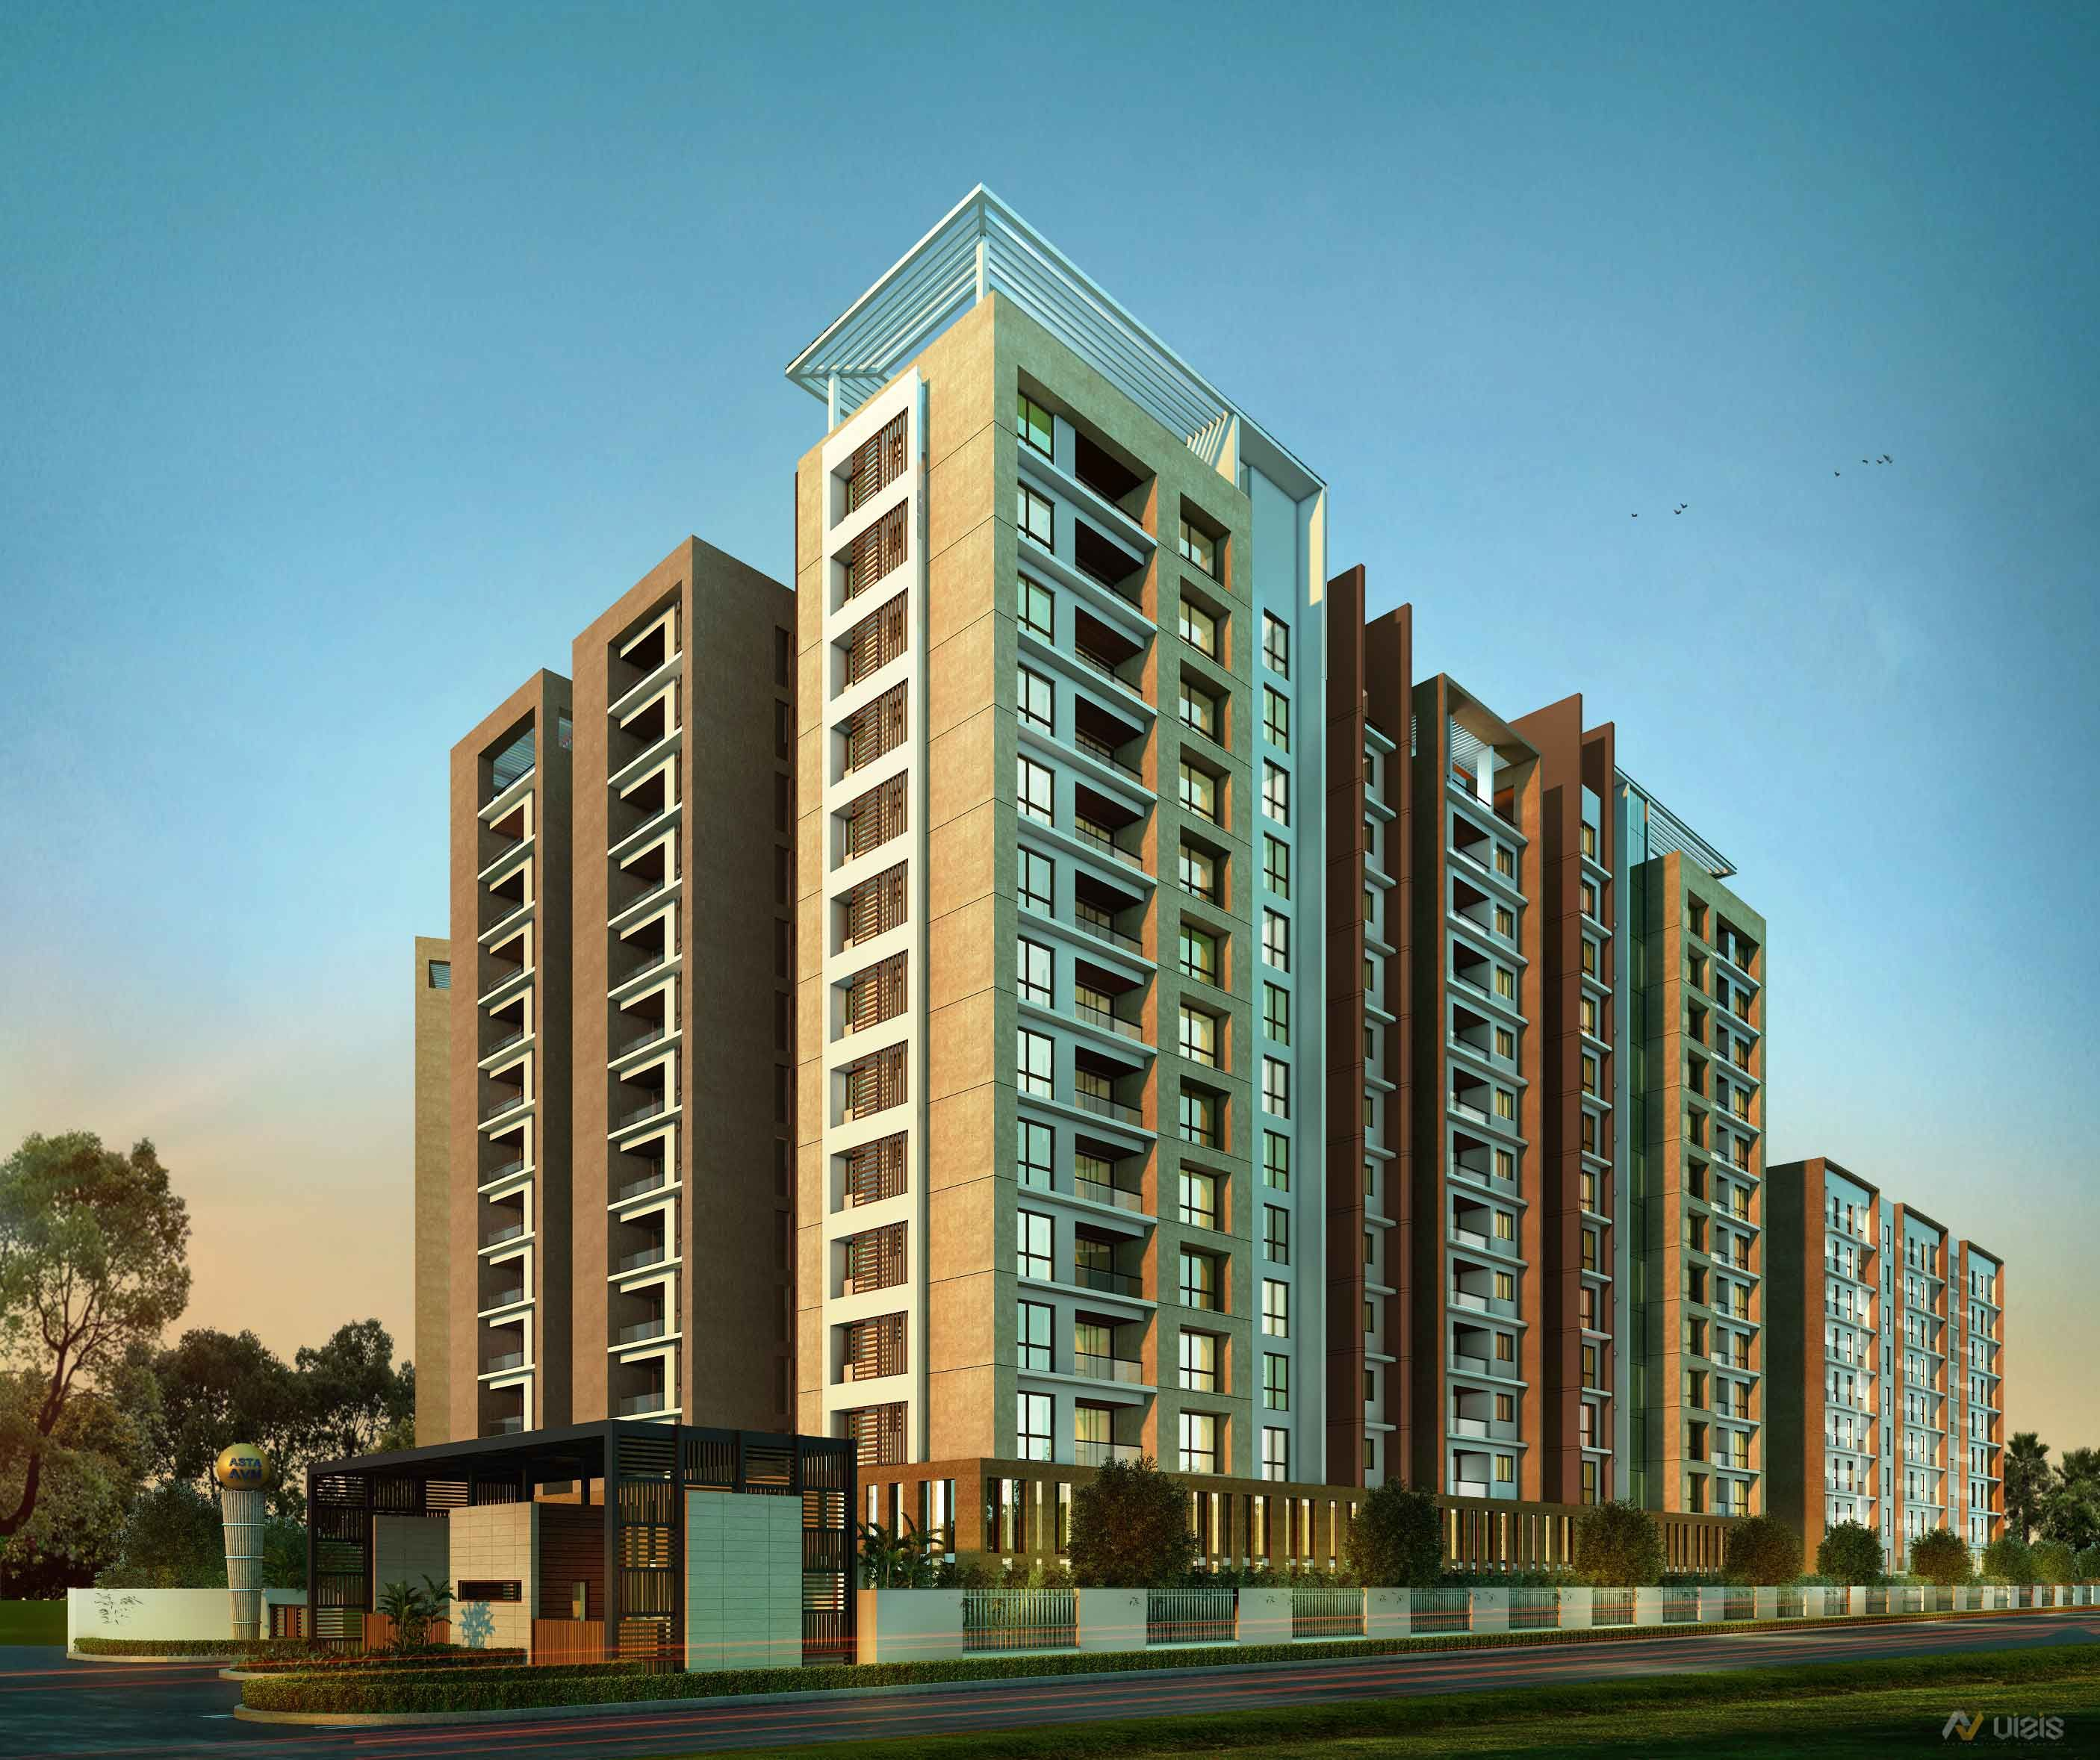 Now leave your worries to buy homes in the fast growing